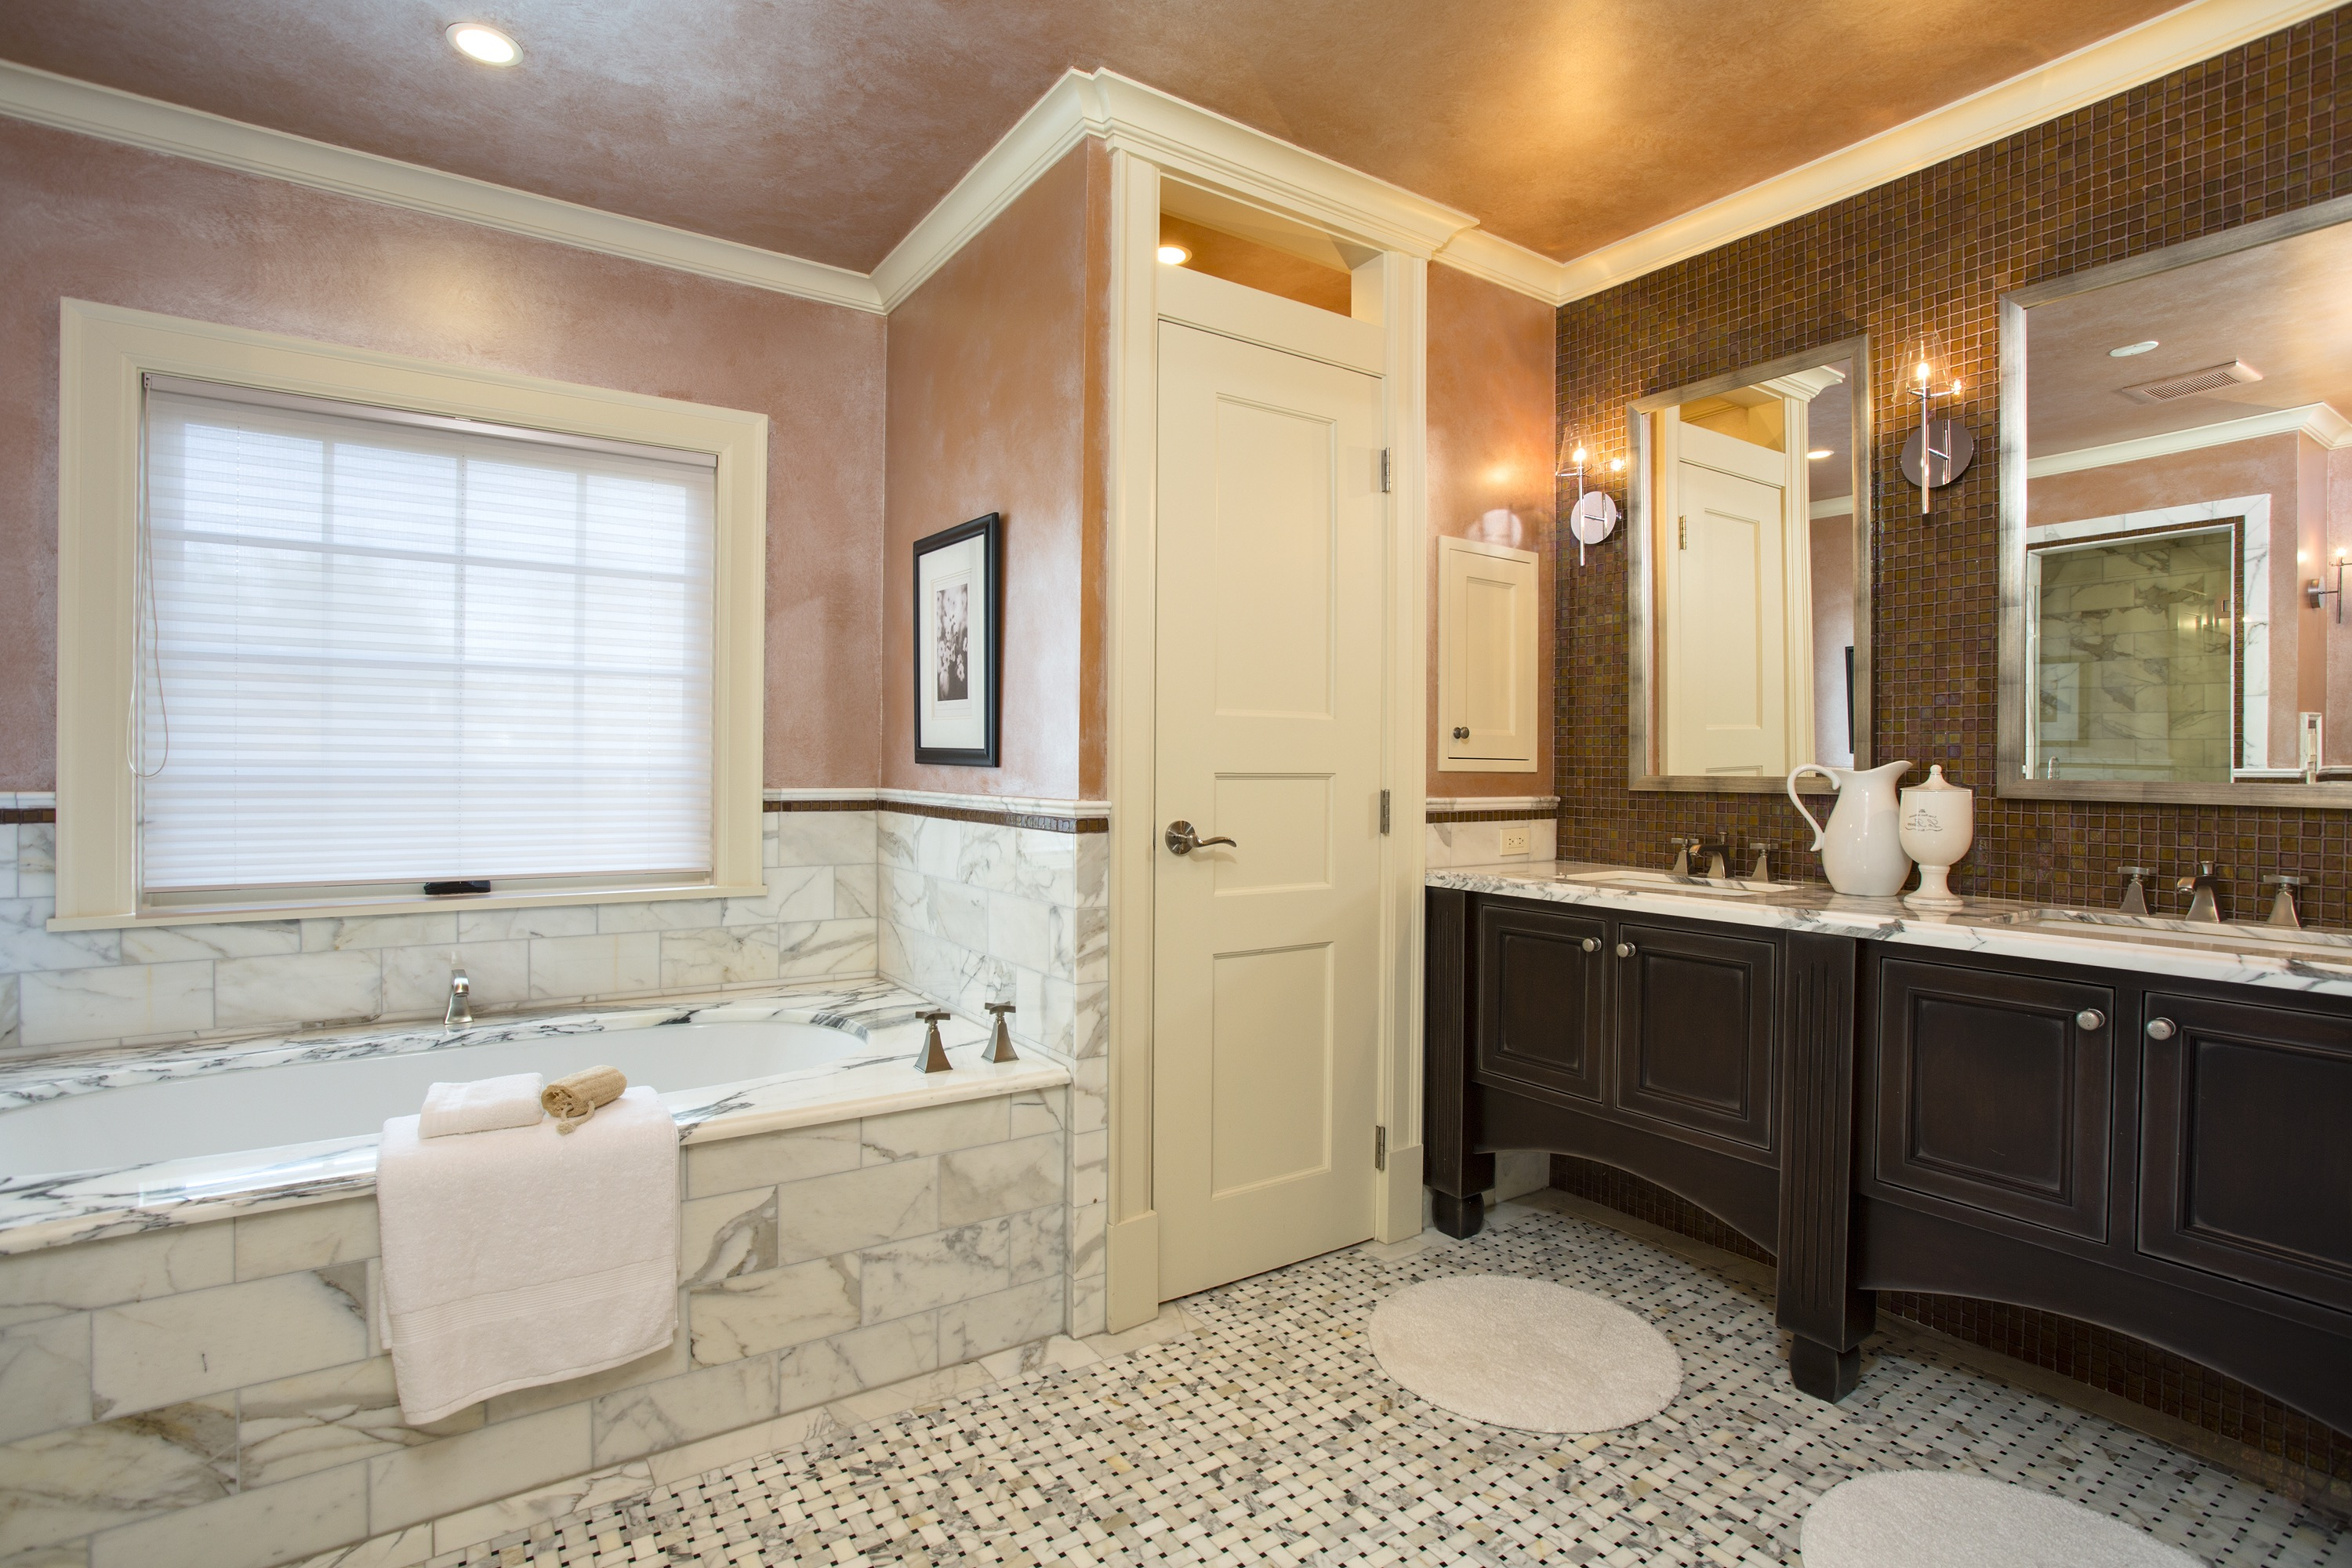 Neoclassical Bathroom Interior Furniture And Cabinets (Image 25 of 29)